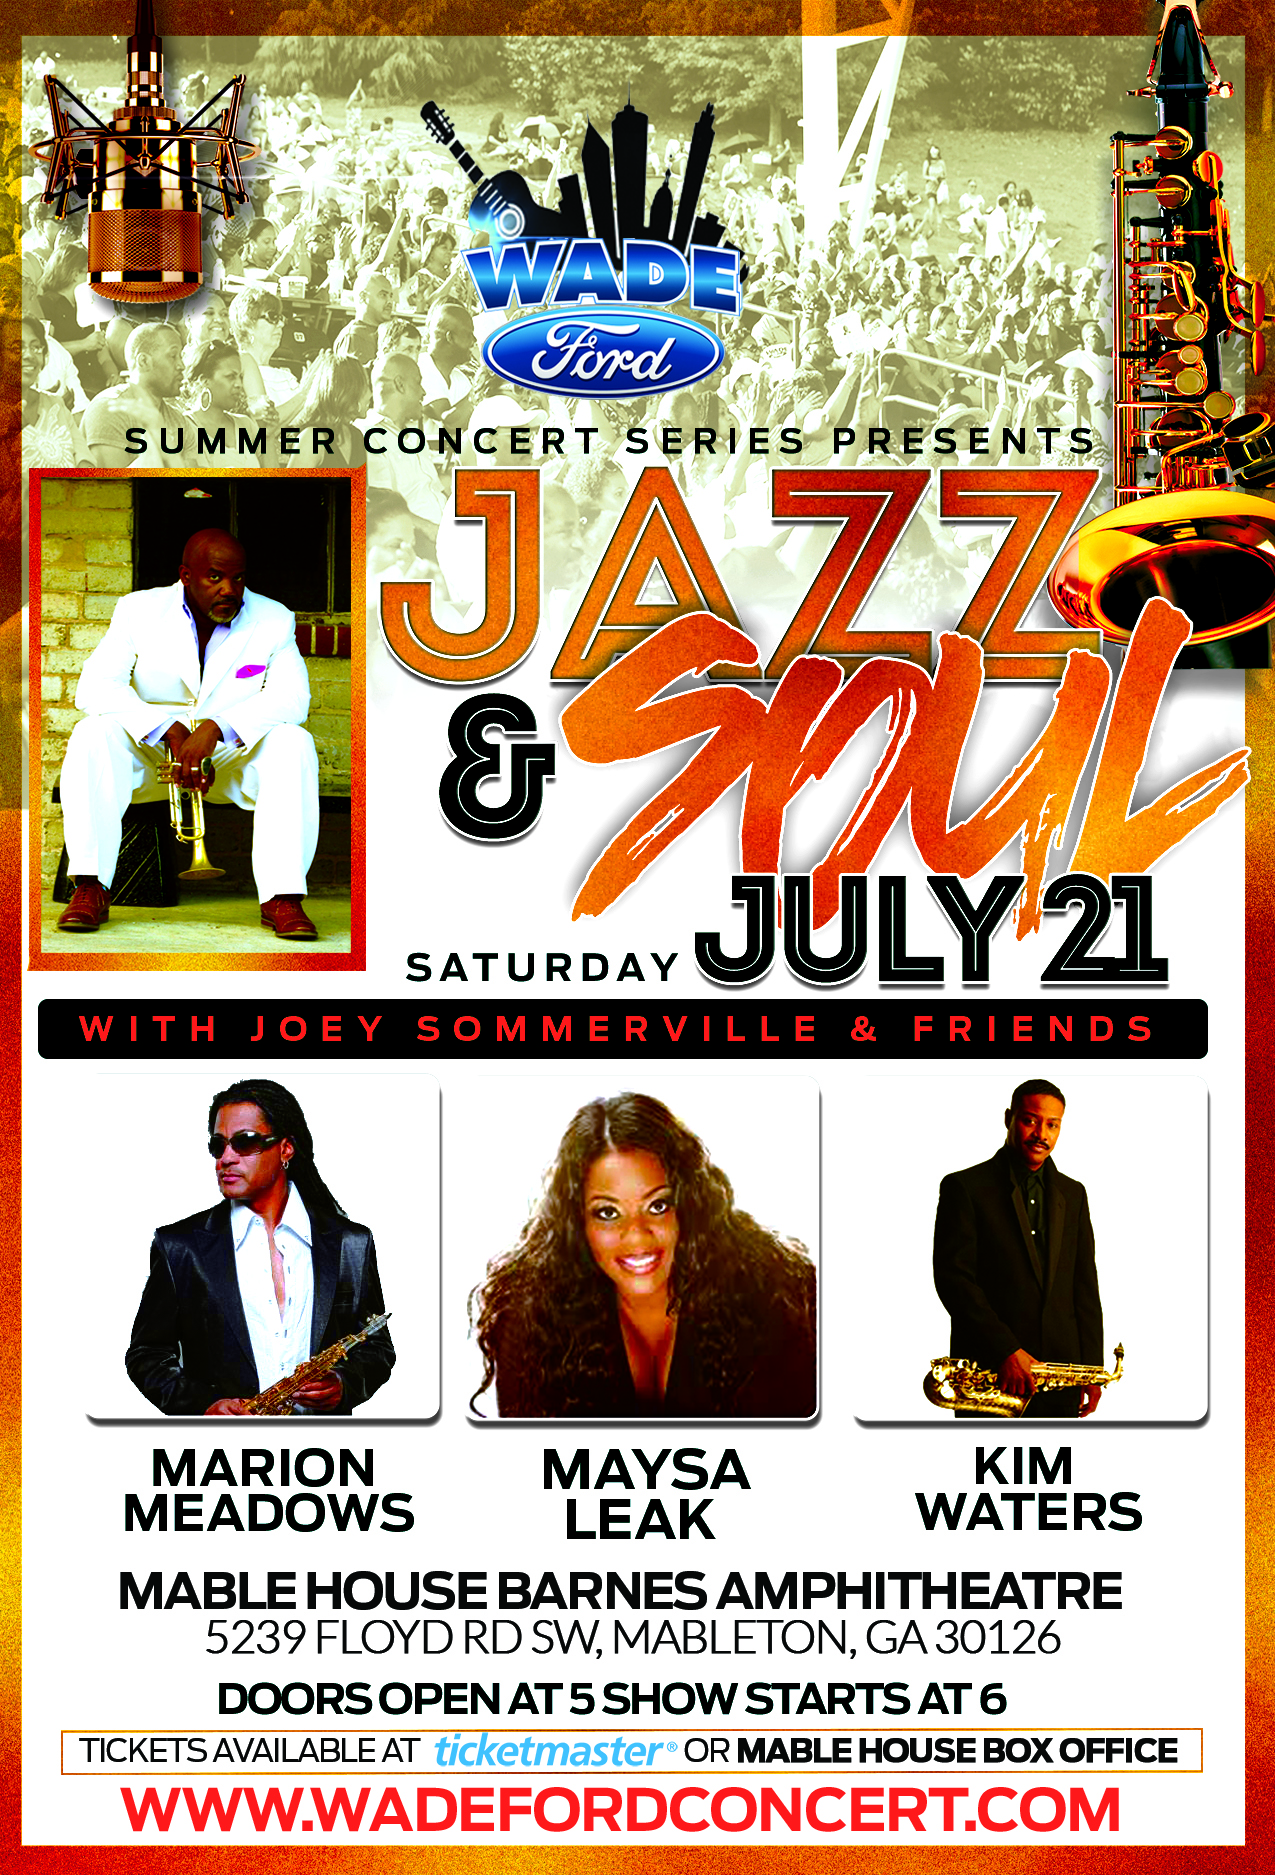 Wade Ford Presents Jazz And Soul